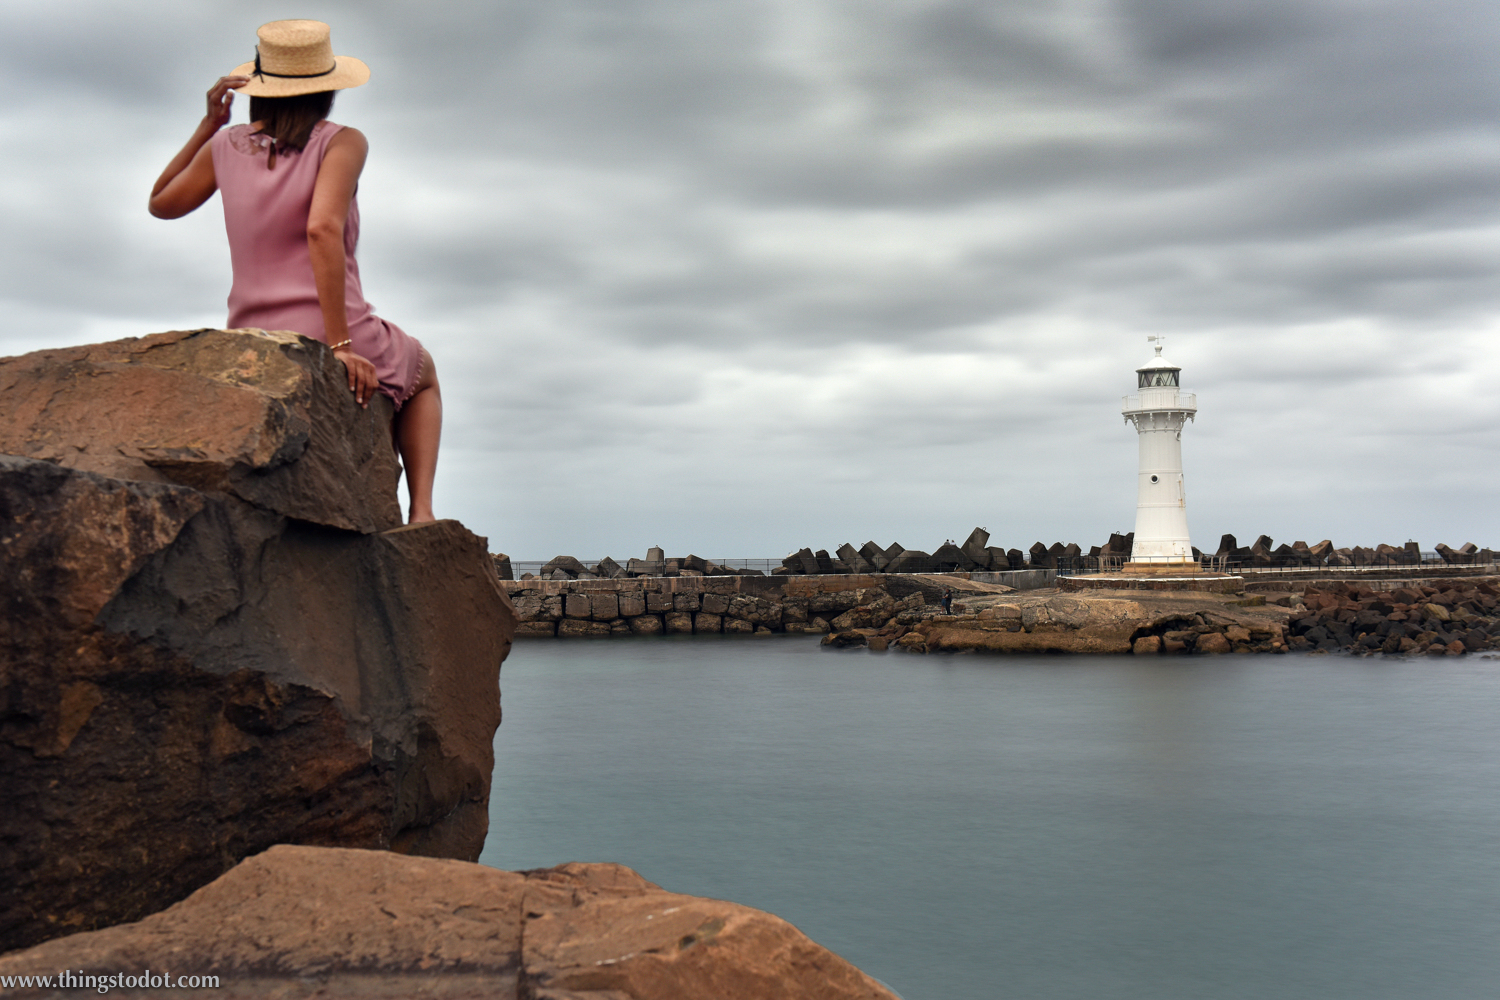 Wollongong Harbour Old Lighthouse,NSW, Australia. Photo: Brad Chilby (http://chilby.com.au). Image©www.thingstodot.com. Clothes:https://www.cream-clothing.com.